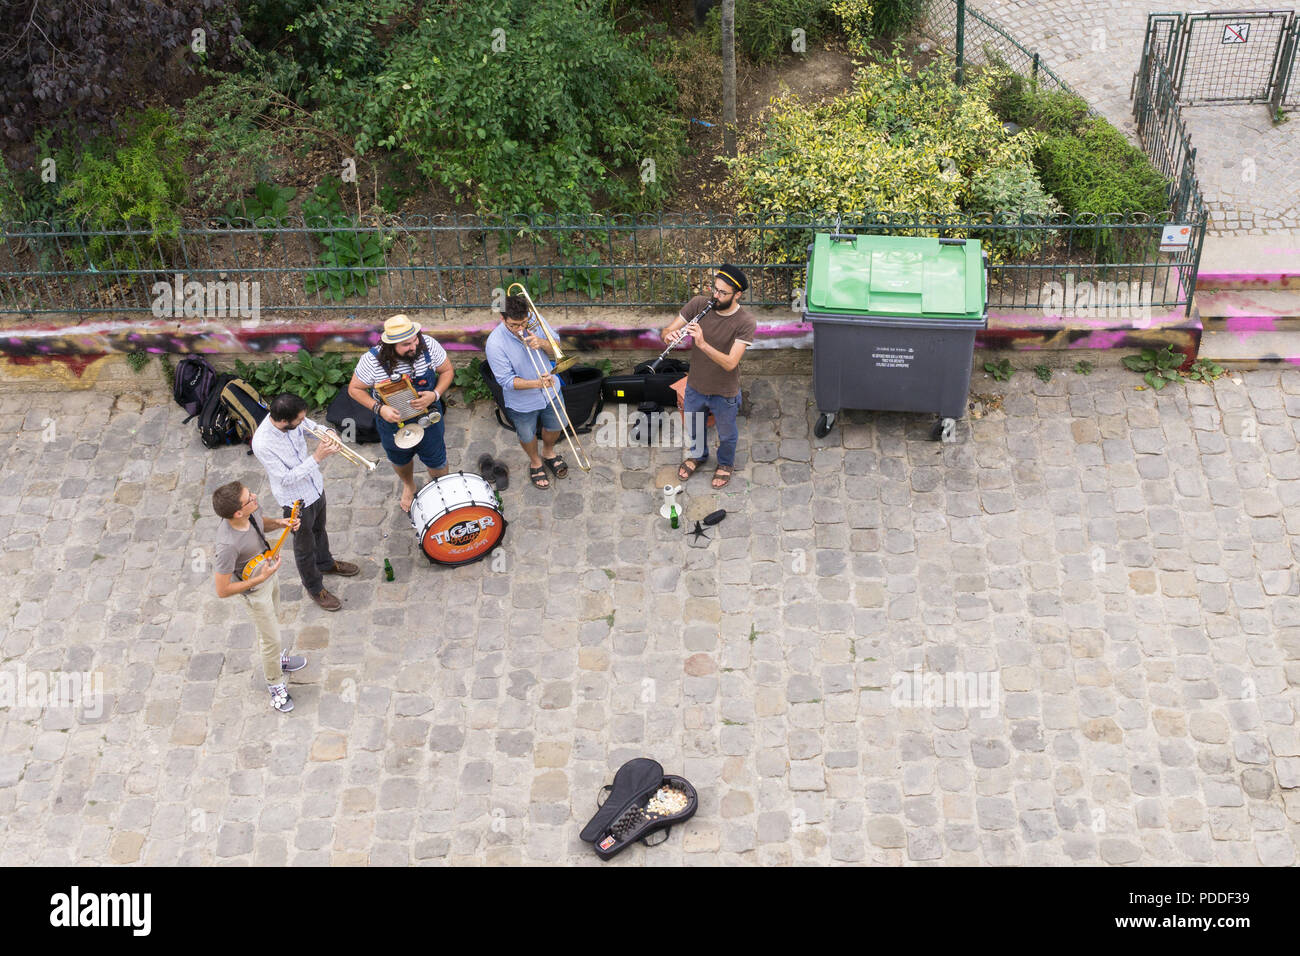 Street musicians playing under the Pont Neuf bridge in Paris, France. - Stock Image